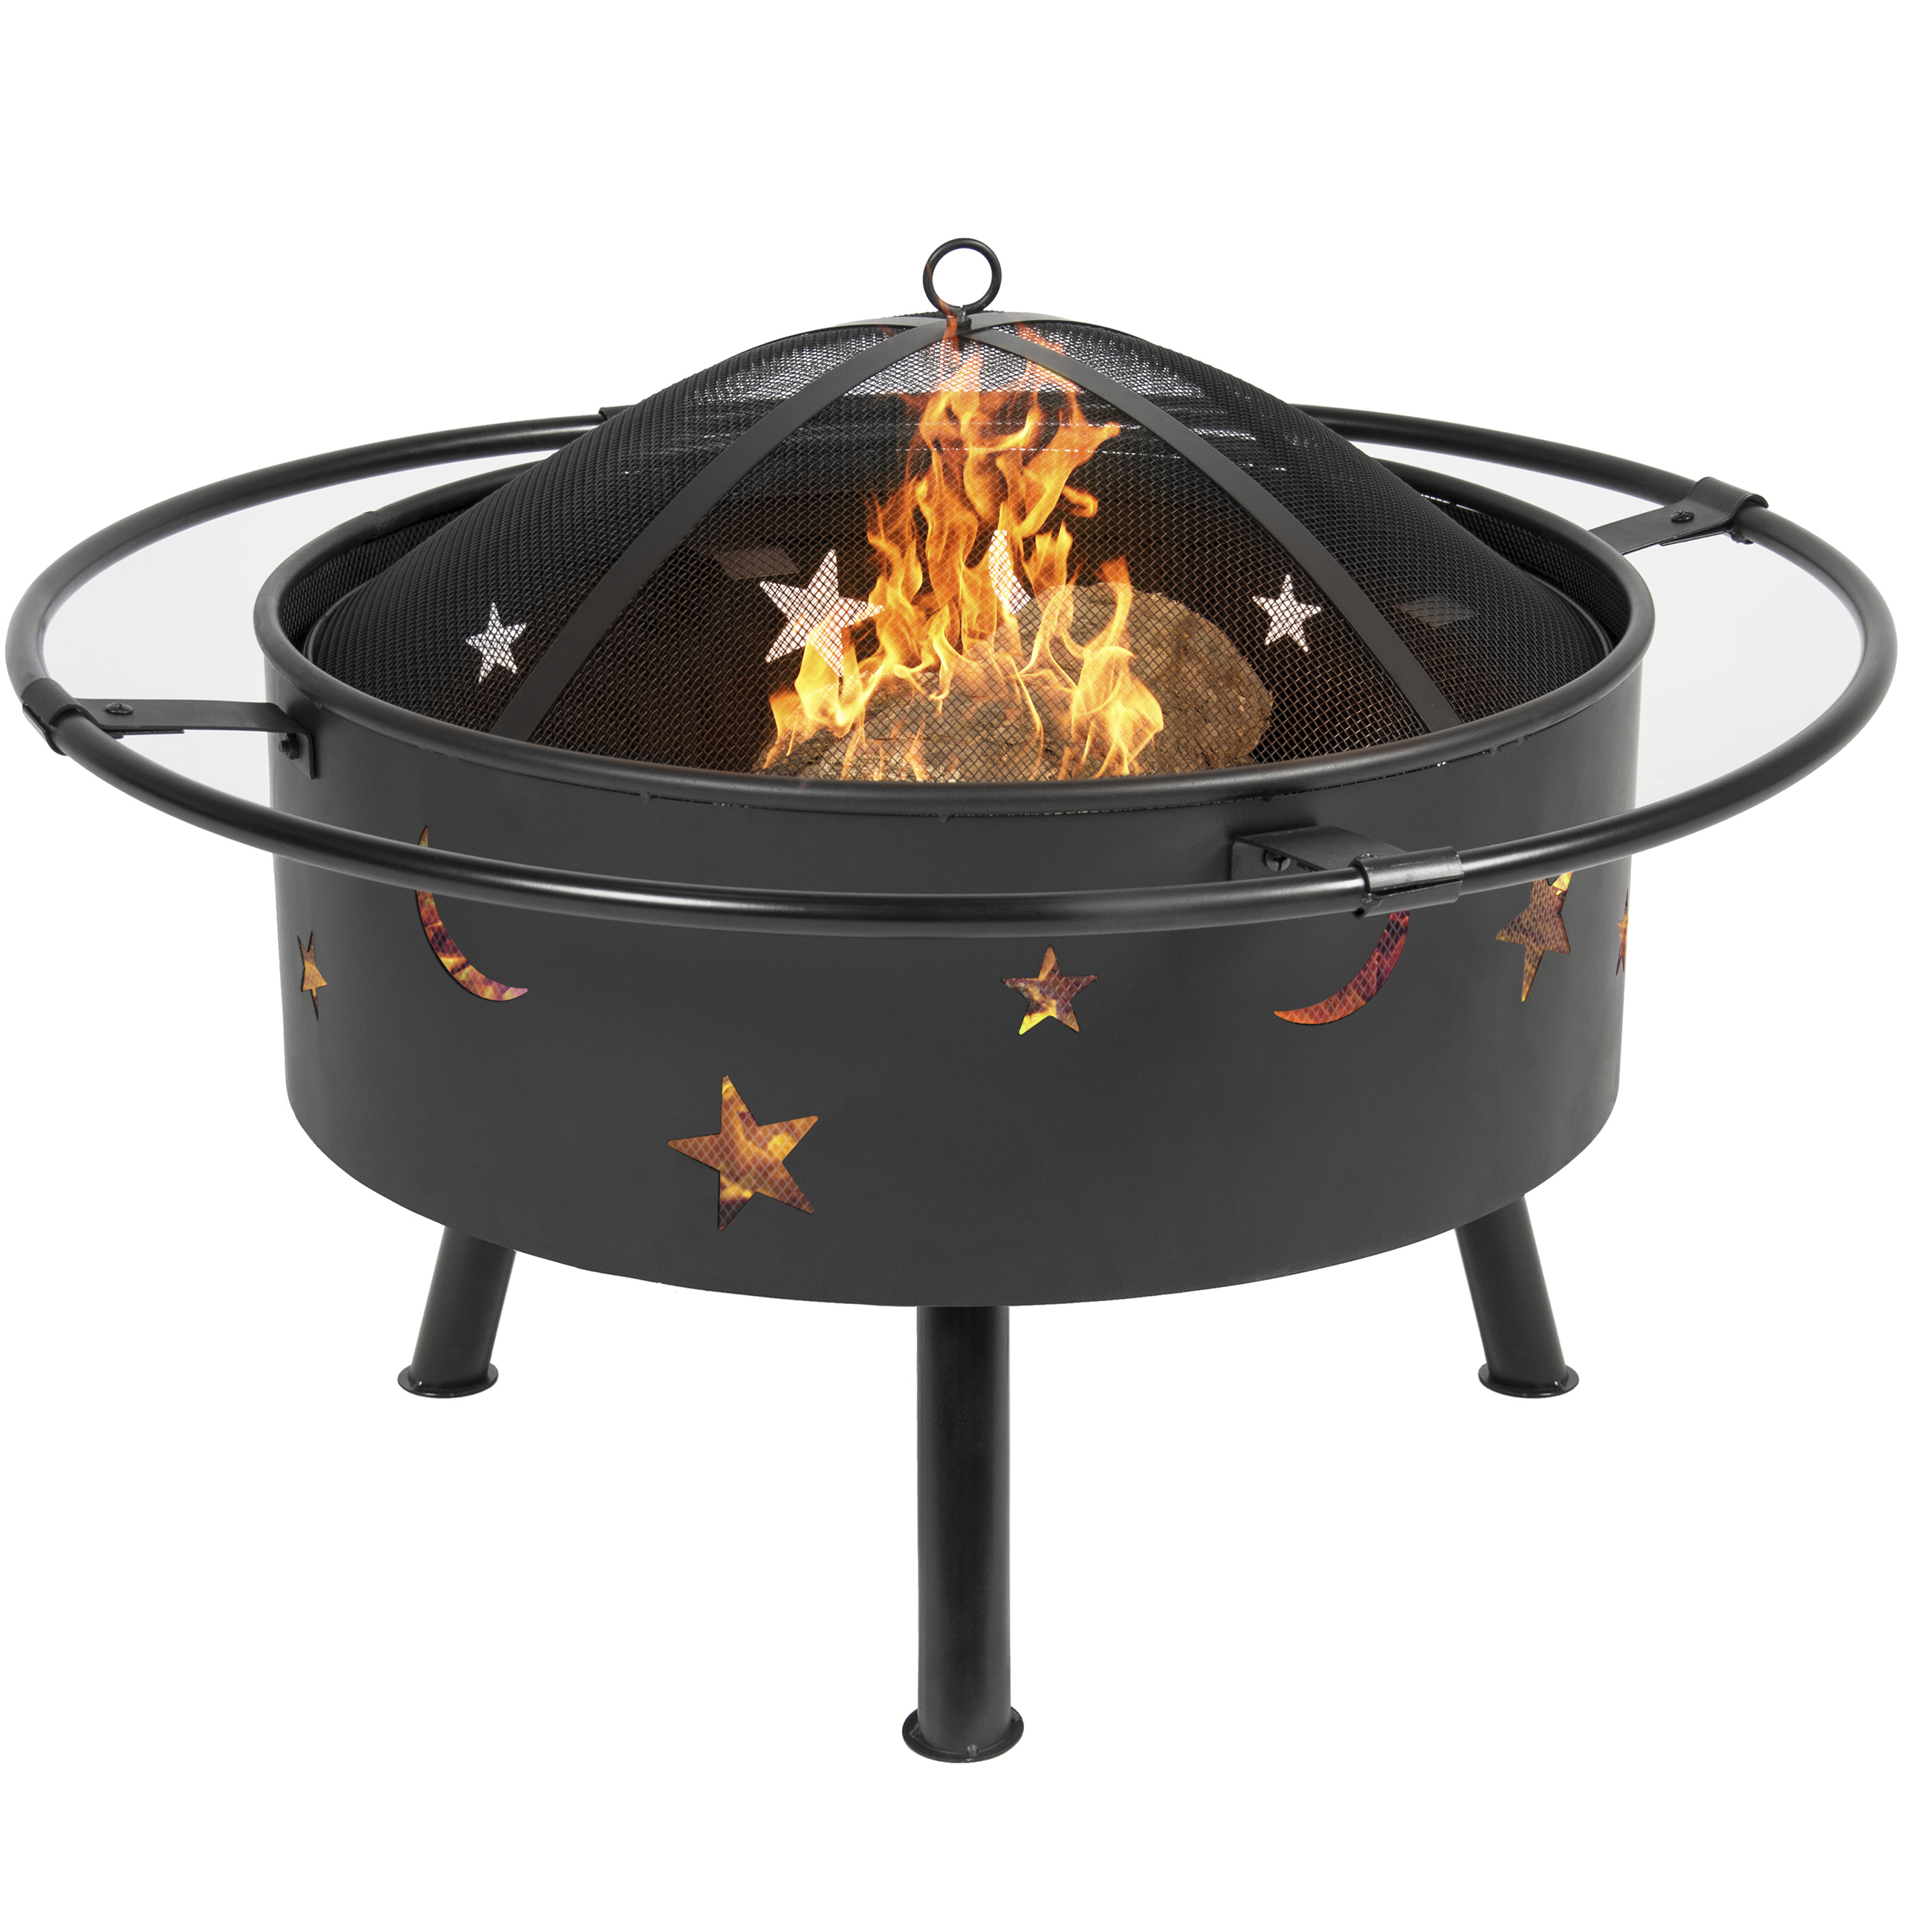 Best Choice Products 30quot Fire Pit Bbq Grill Firebowl Patio